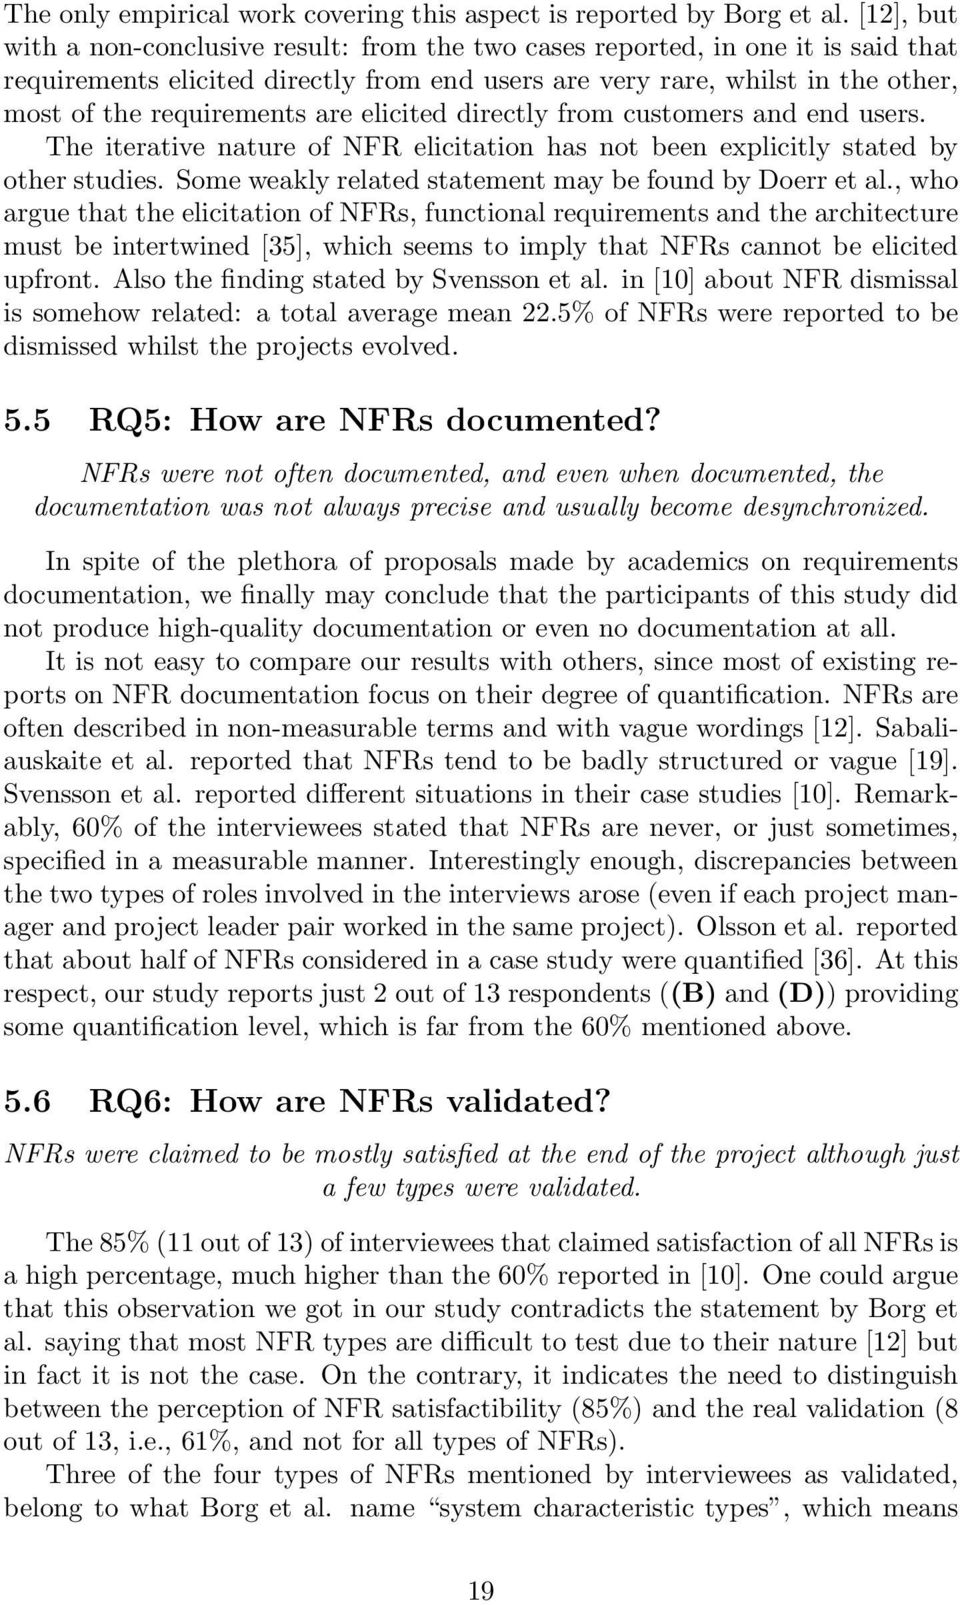 are elicited directly from customers and end users. The iterative nature of NFR elicitation has not been explicitly stated by other studies. Some weakly related statement may be found by Doerr et al.